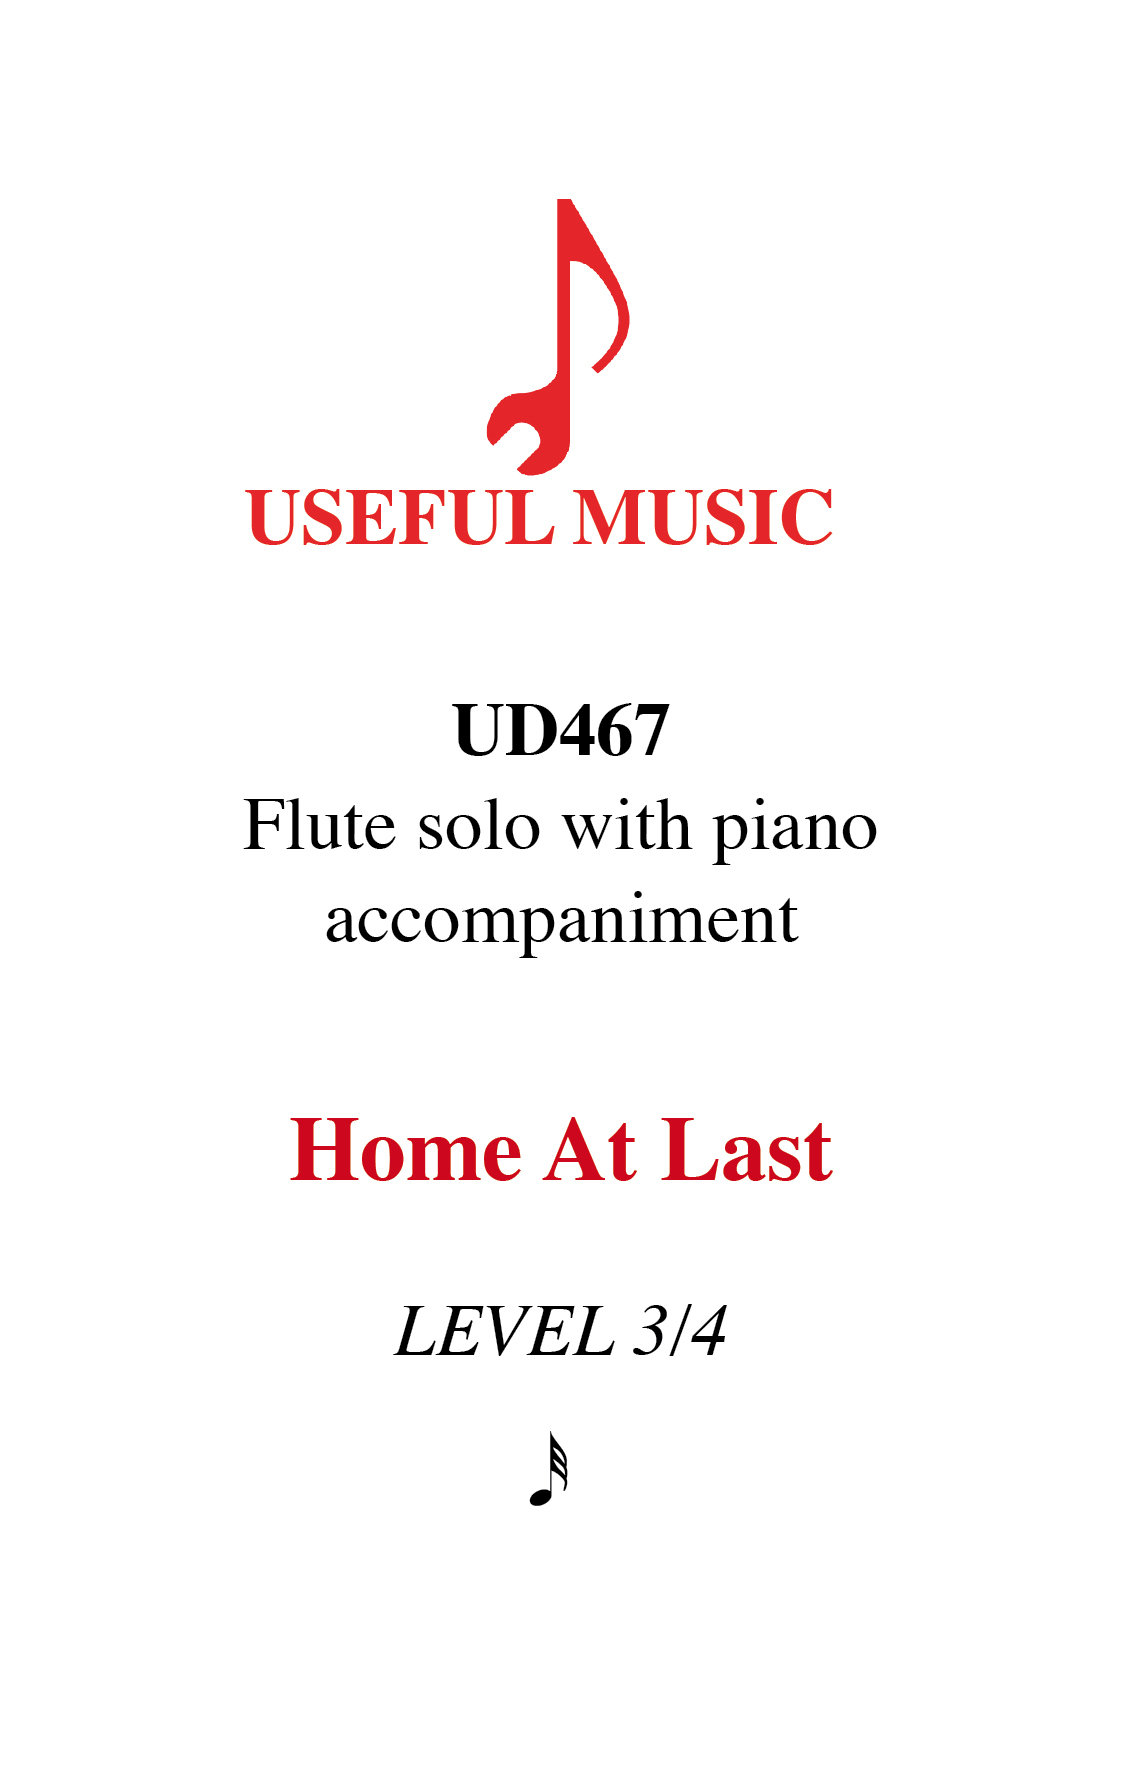 Home at Last - flute with piano accompaniment